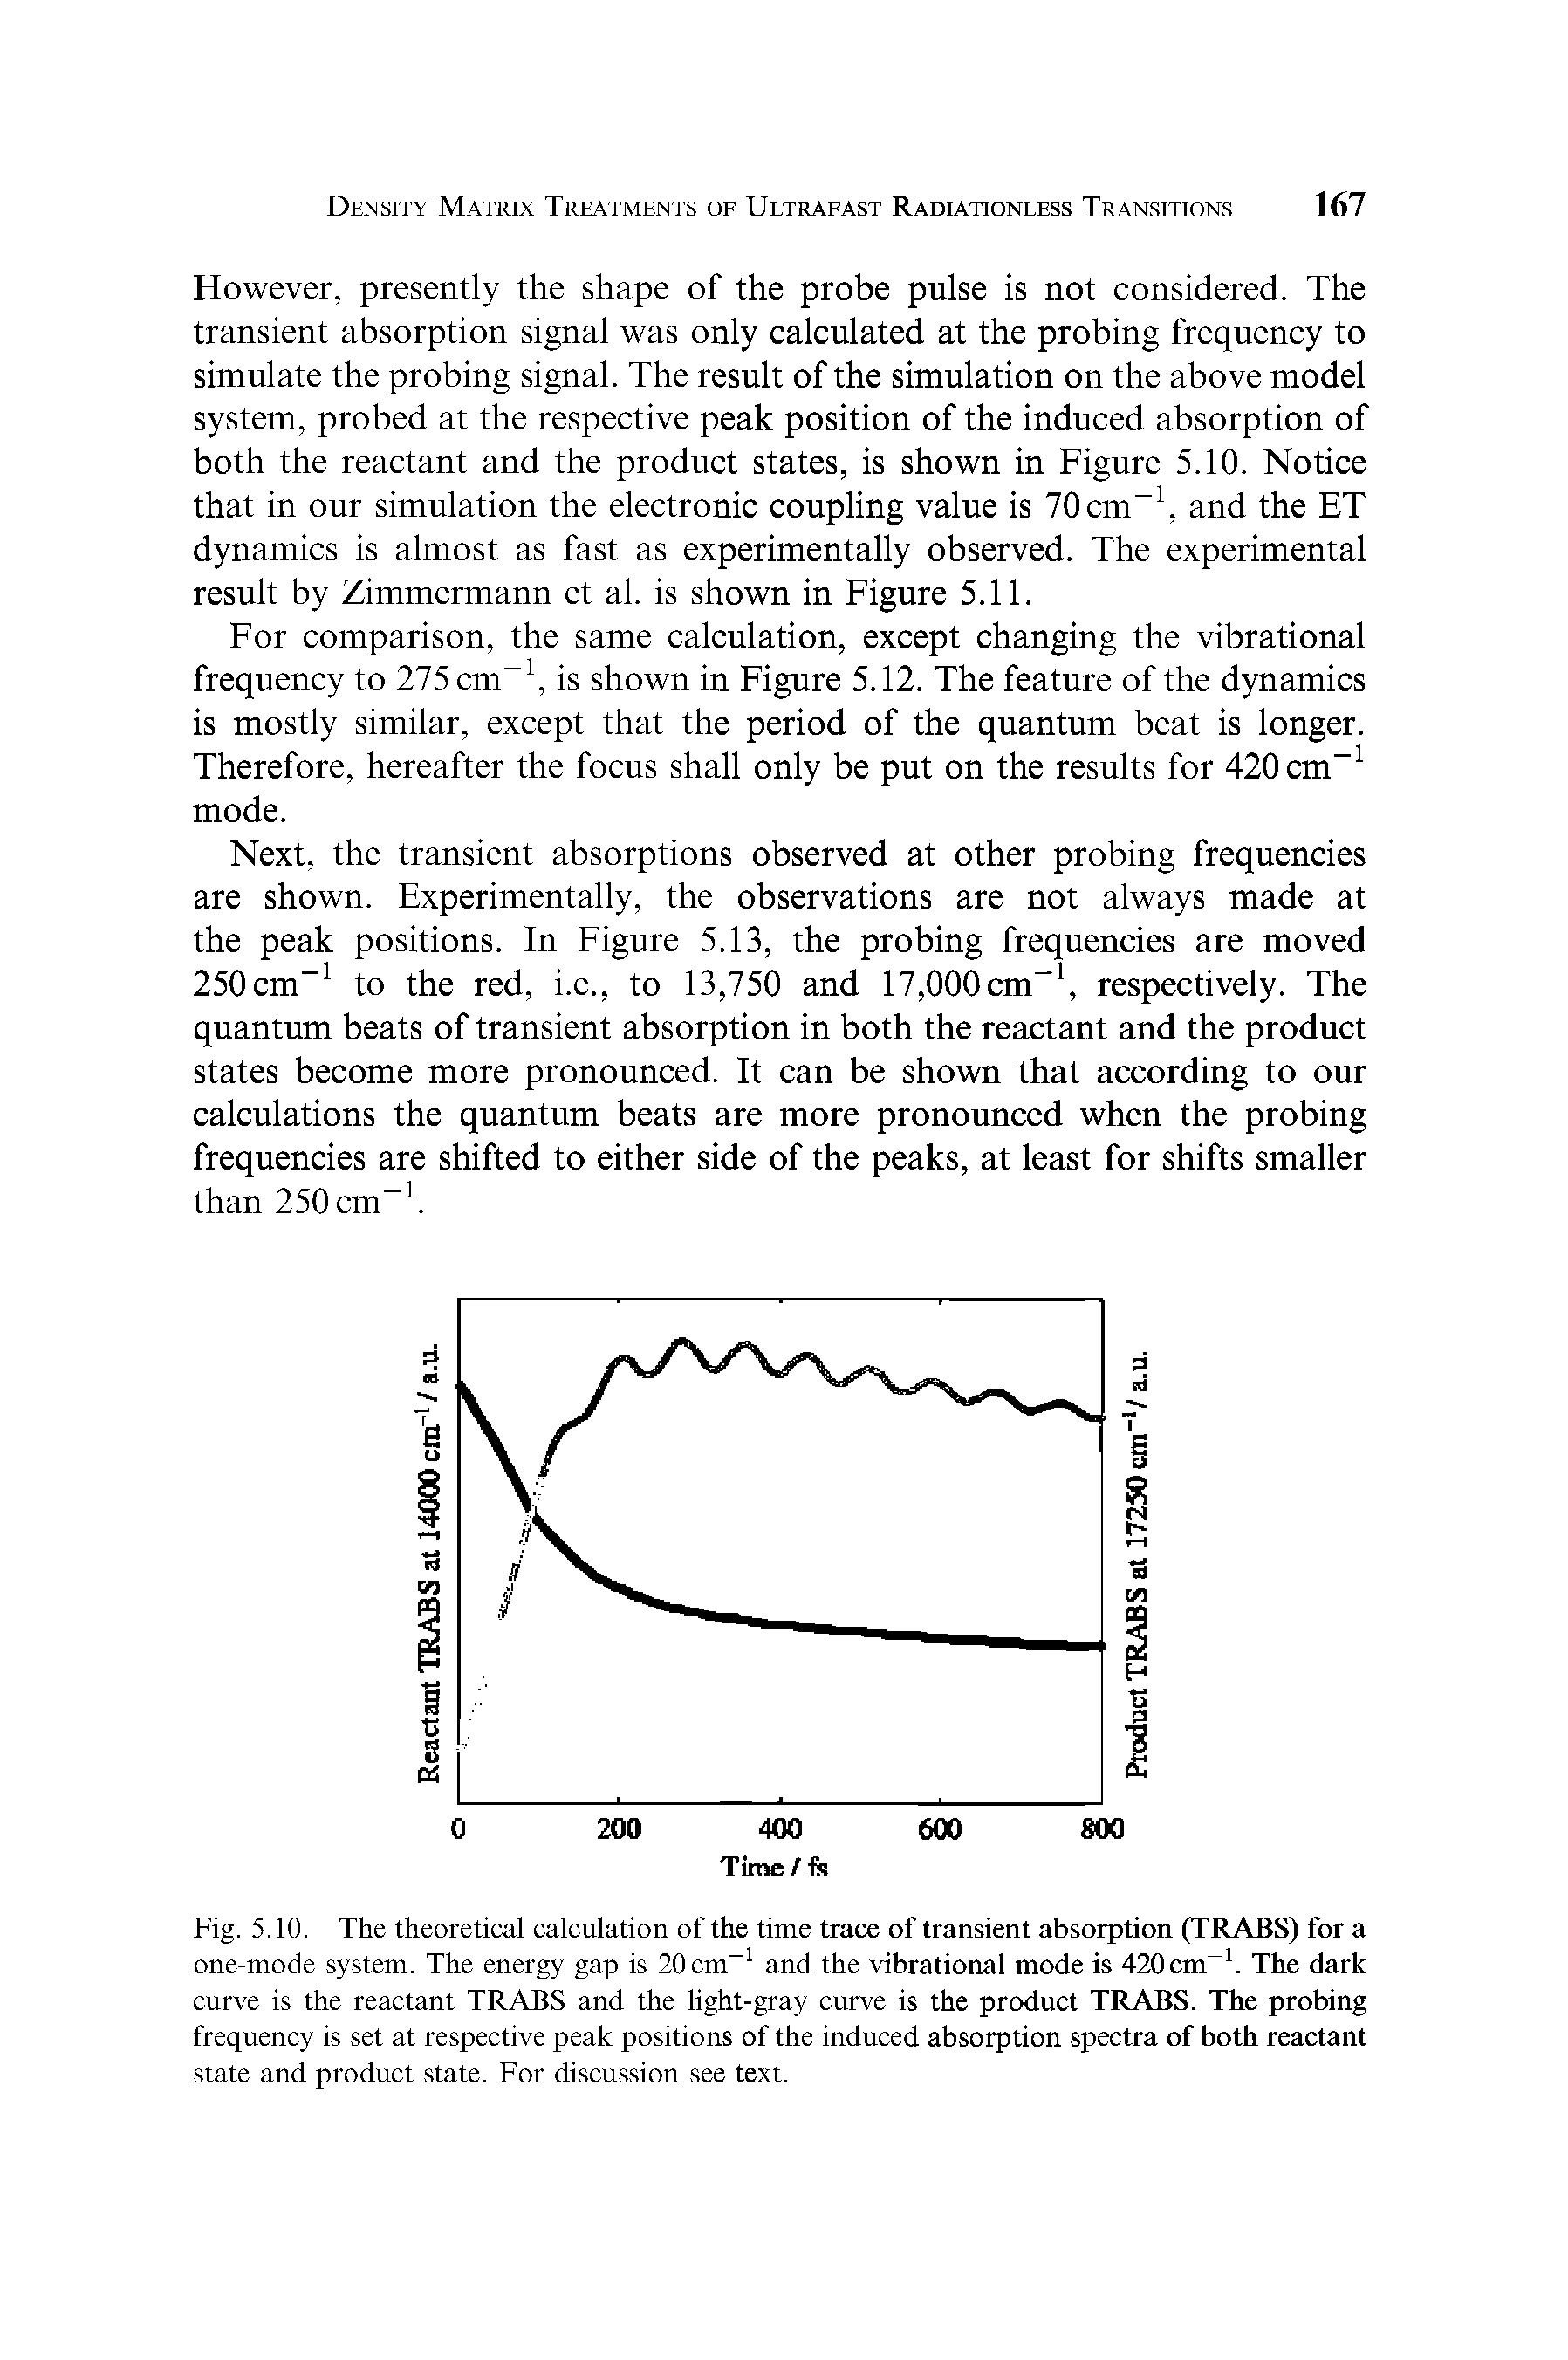 "Fig. 5.10. The <a href=""/info/theoretical_calculations"">theoretical calculation</a> of the time trace of <a href=""/info/transient_absorption"">transient absorption</a> (TRABS) for a one-mode system. The energy gap is 20 cm-1 and the <a href=""/info/vibrational_modes"">vibrational mode</a> is 420 cm-1. The dark curve is the reactant TRABS and the light-gray curve is the product TRABS. The <a href=""/info/sum_frequency_probes"">probing frequency</a> is set at respective <a href=""/info/peak_positions"">peak positions</a> of the <a href=""/info/induced_absorption"">induced absorption</a> spectra of both <a href=""/info/reactant_state"">reactant state</a> and <a href=""/info/product_state"">product state</a>. For discussion see text."